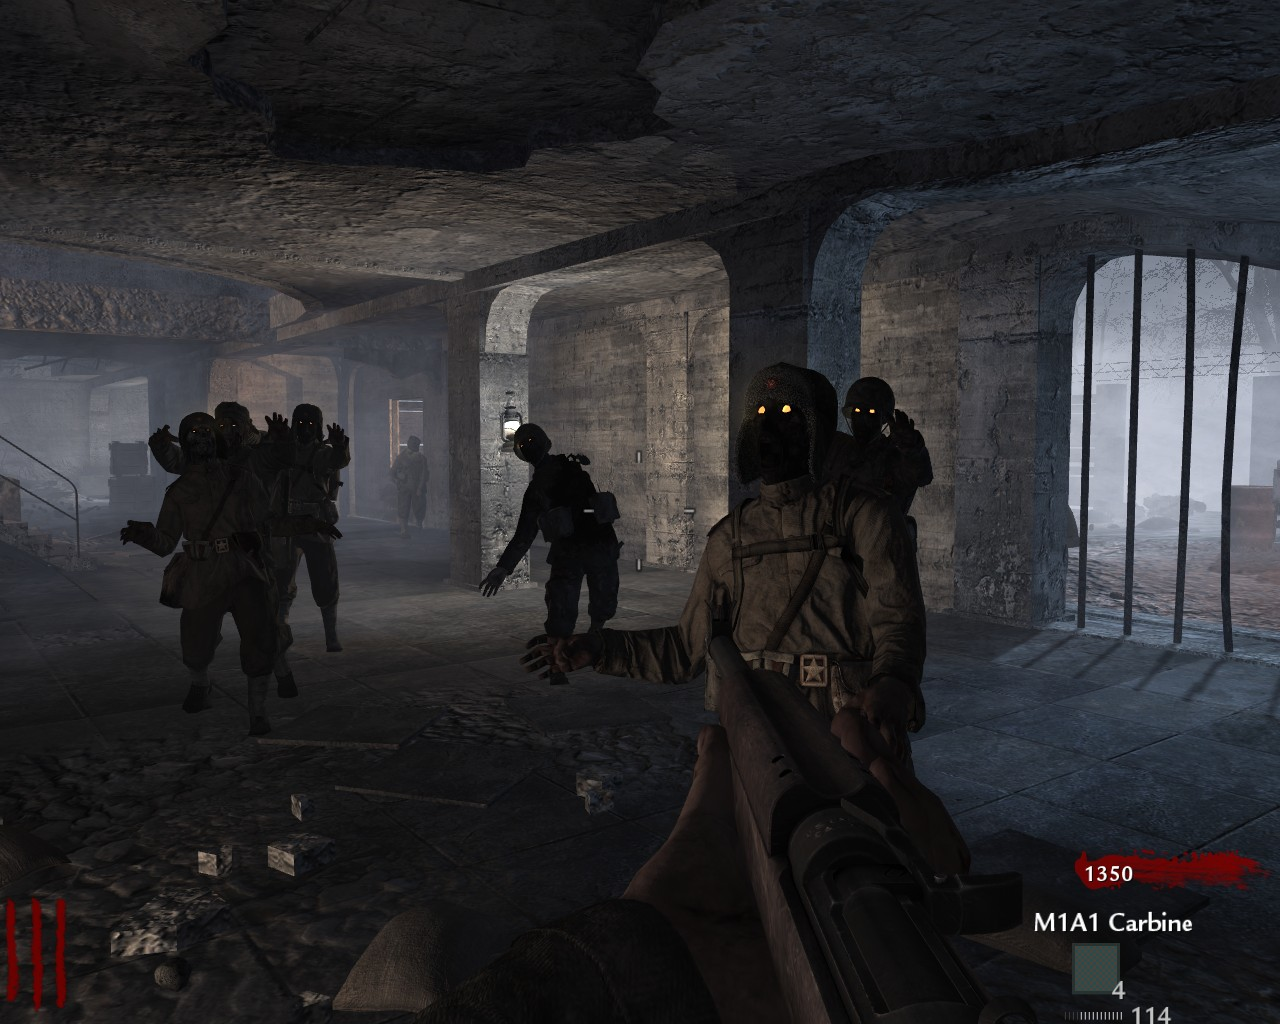 Allied zombies made by ss550101 image - Axis Player mod for Call of Duty:  World at War - Mod DB